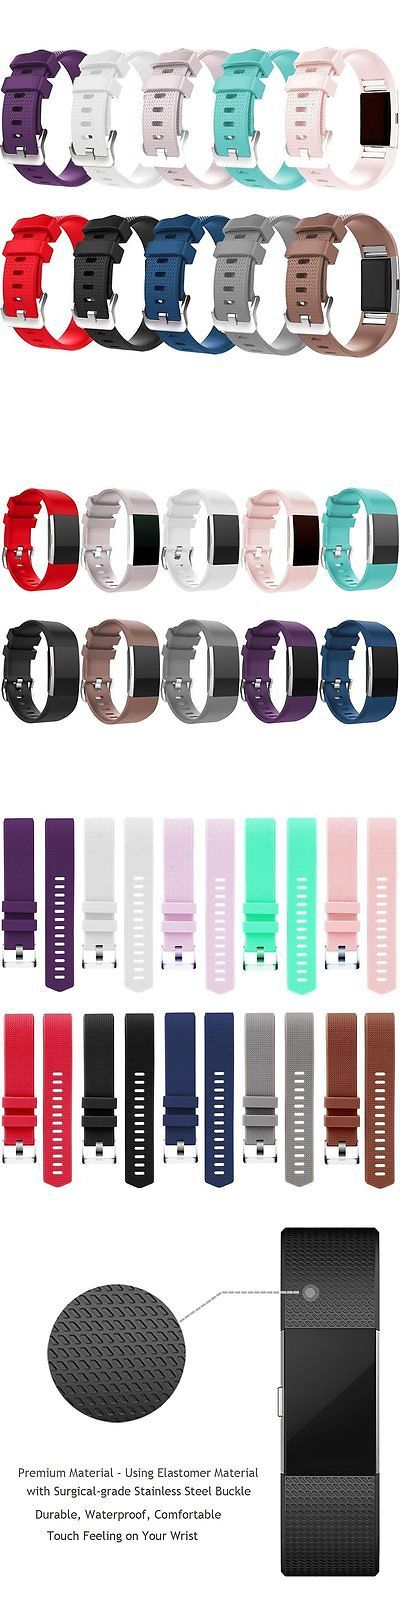 Fit Tech Parts and Accessories 179799: Mega Color 10 Pack Large Wristband Band Strap Bracelet For Fitbit Charge 2 -> BUY IT NOW ONLY: $42.18 on eBay!